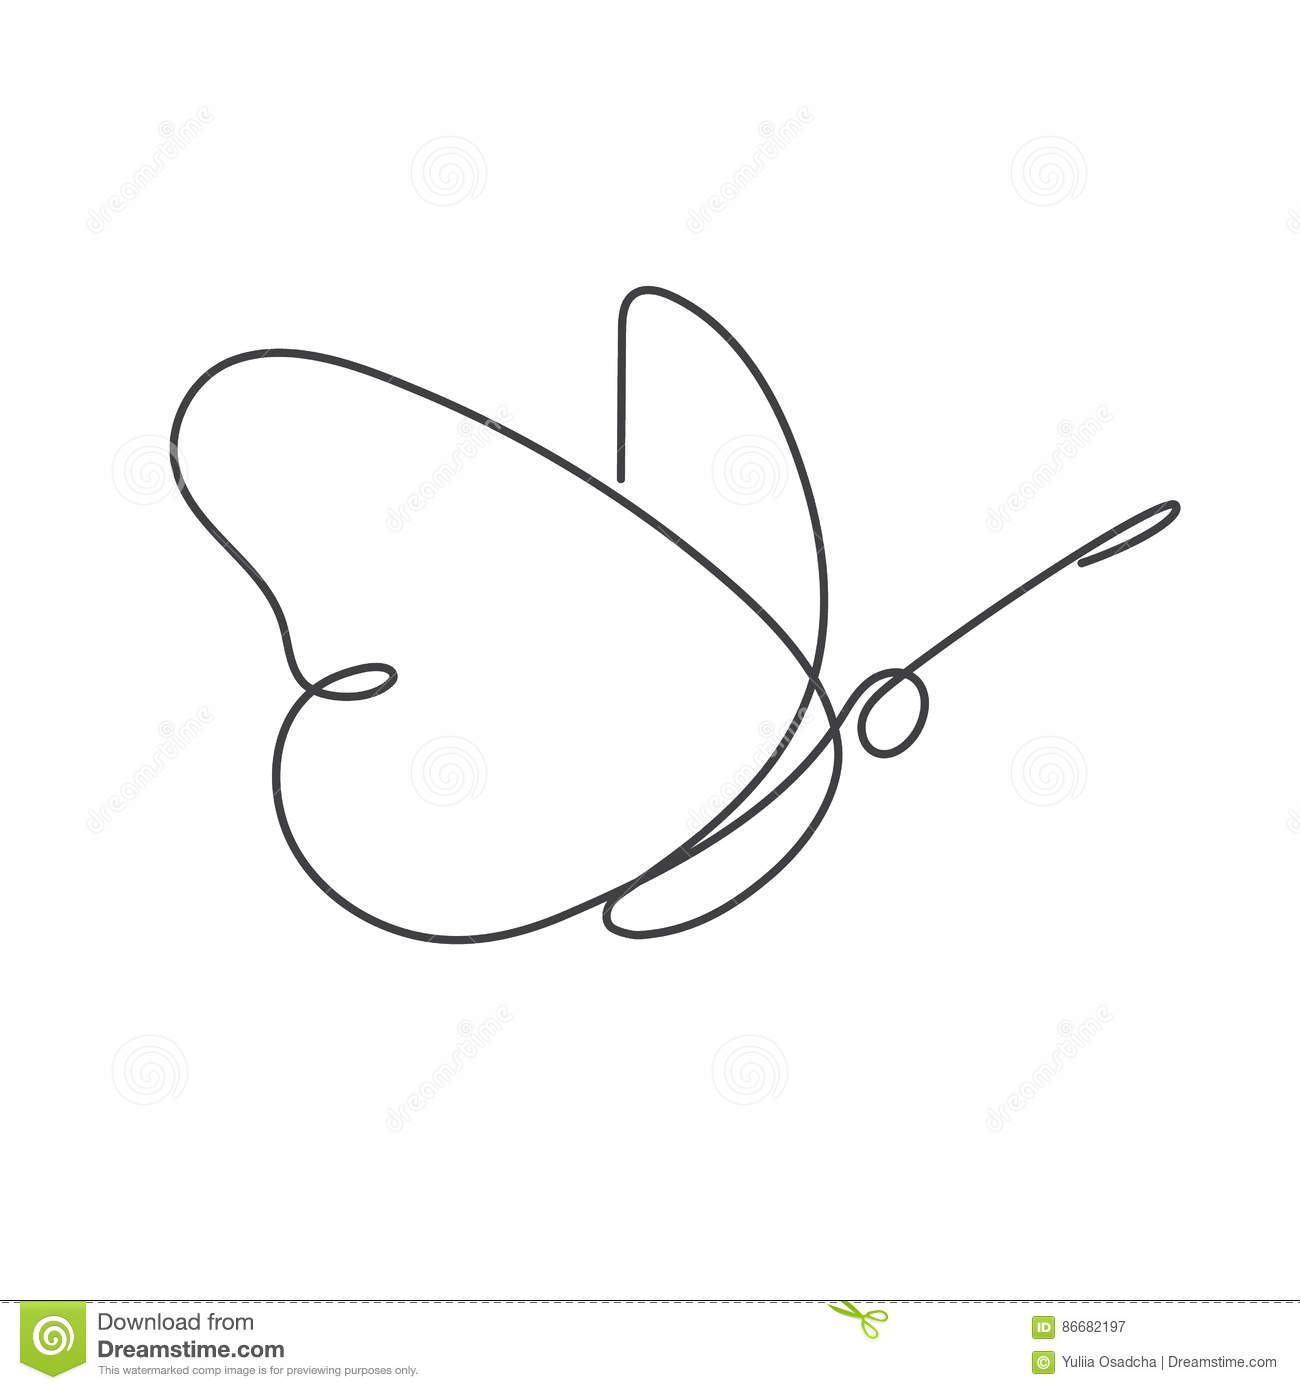 Line Art Design Illustration : Continuous line butterfly white one drawing stock